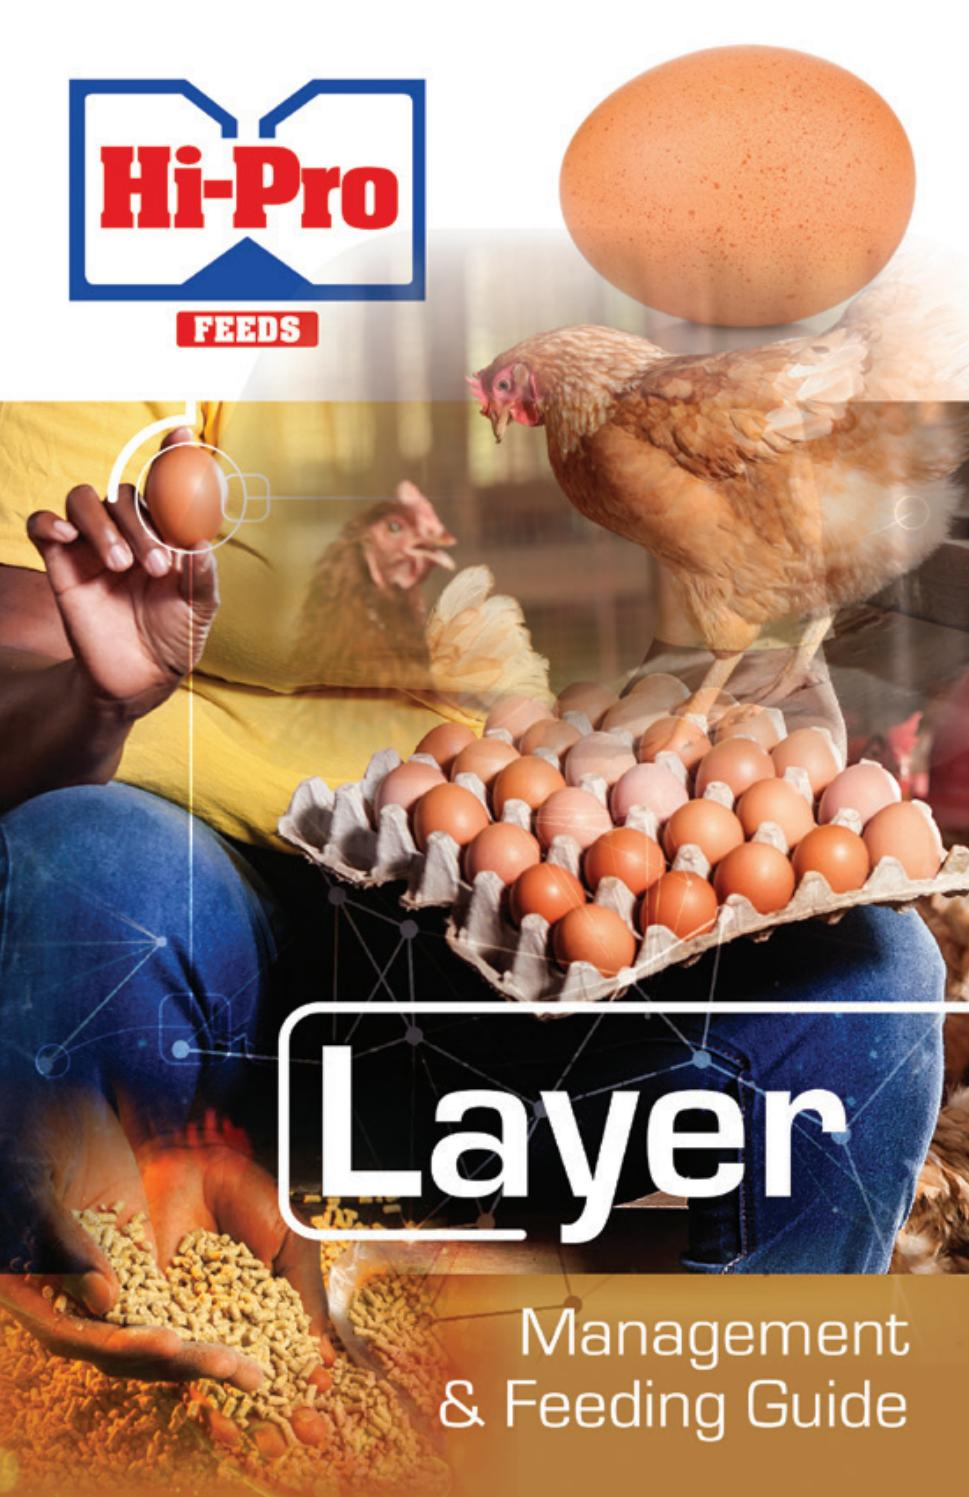 Hi-Pro Layer Management & Feeding Guide 2017 by Nick McClure